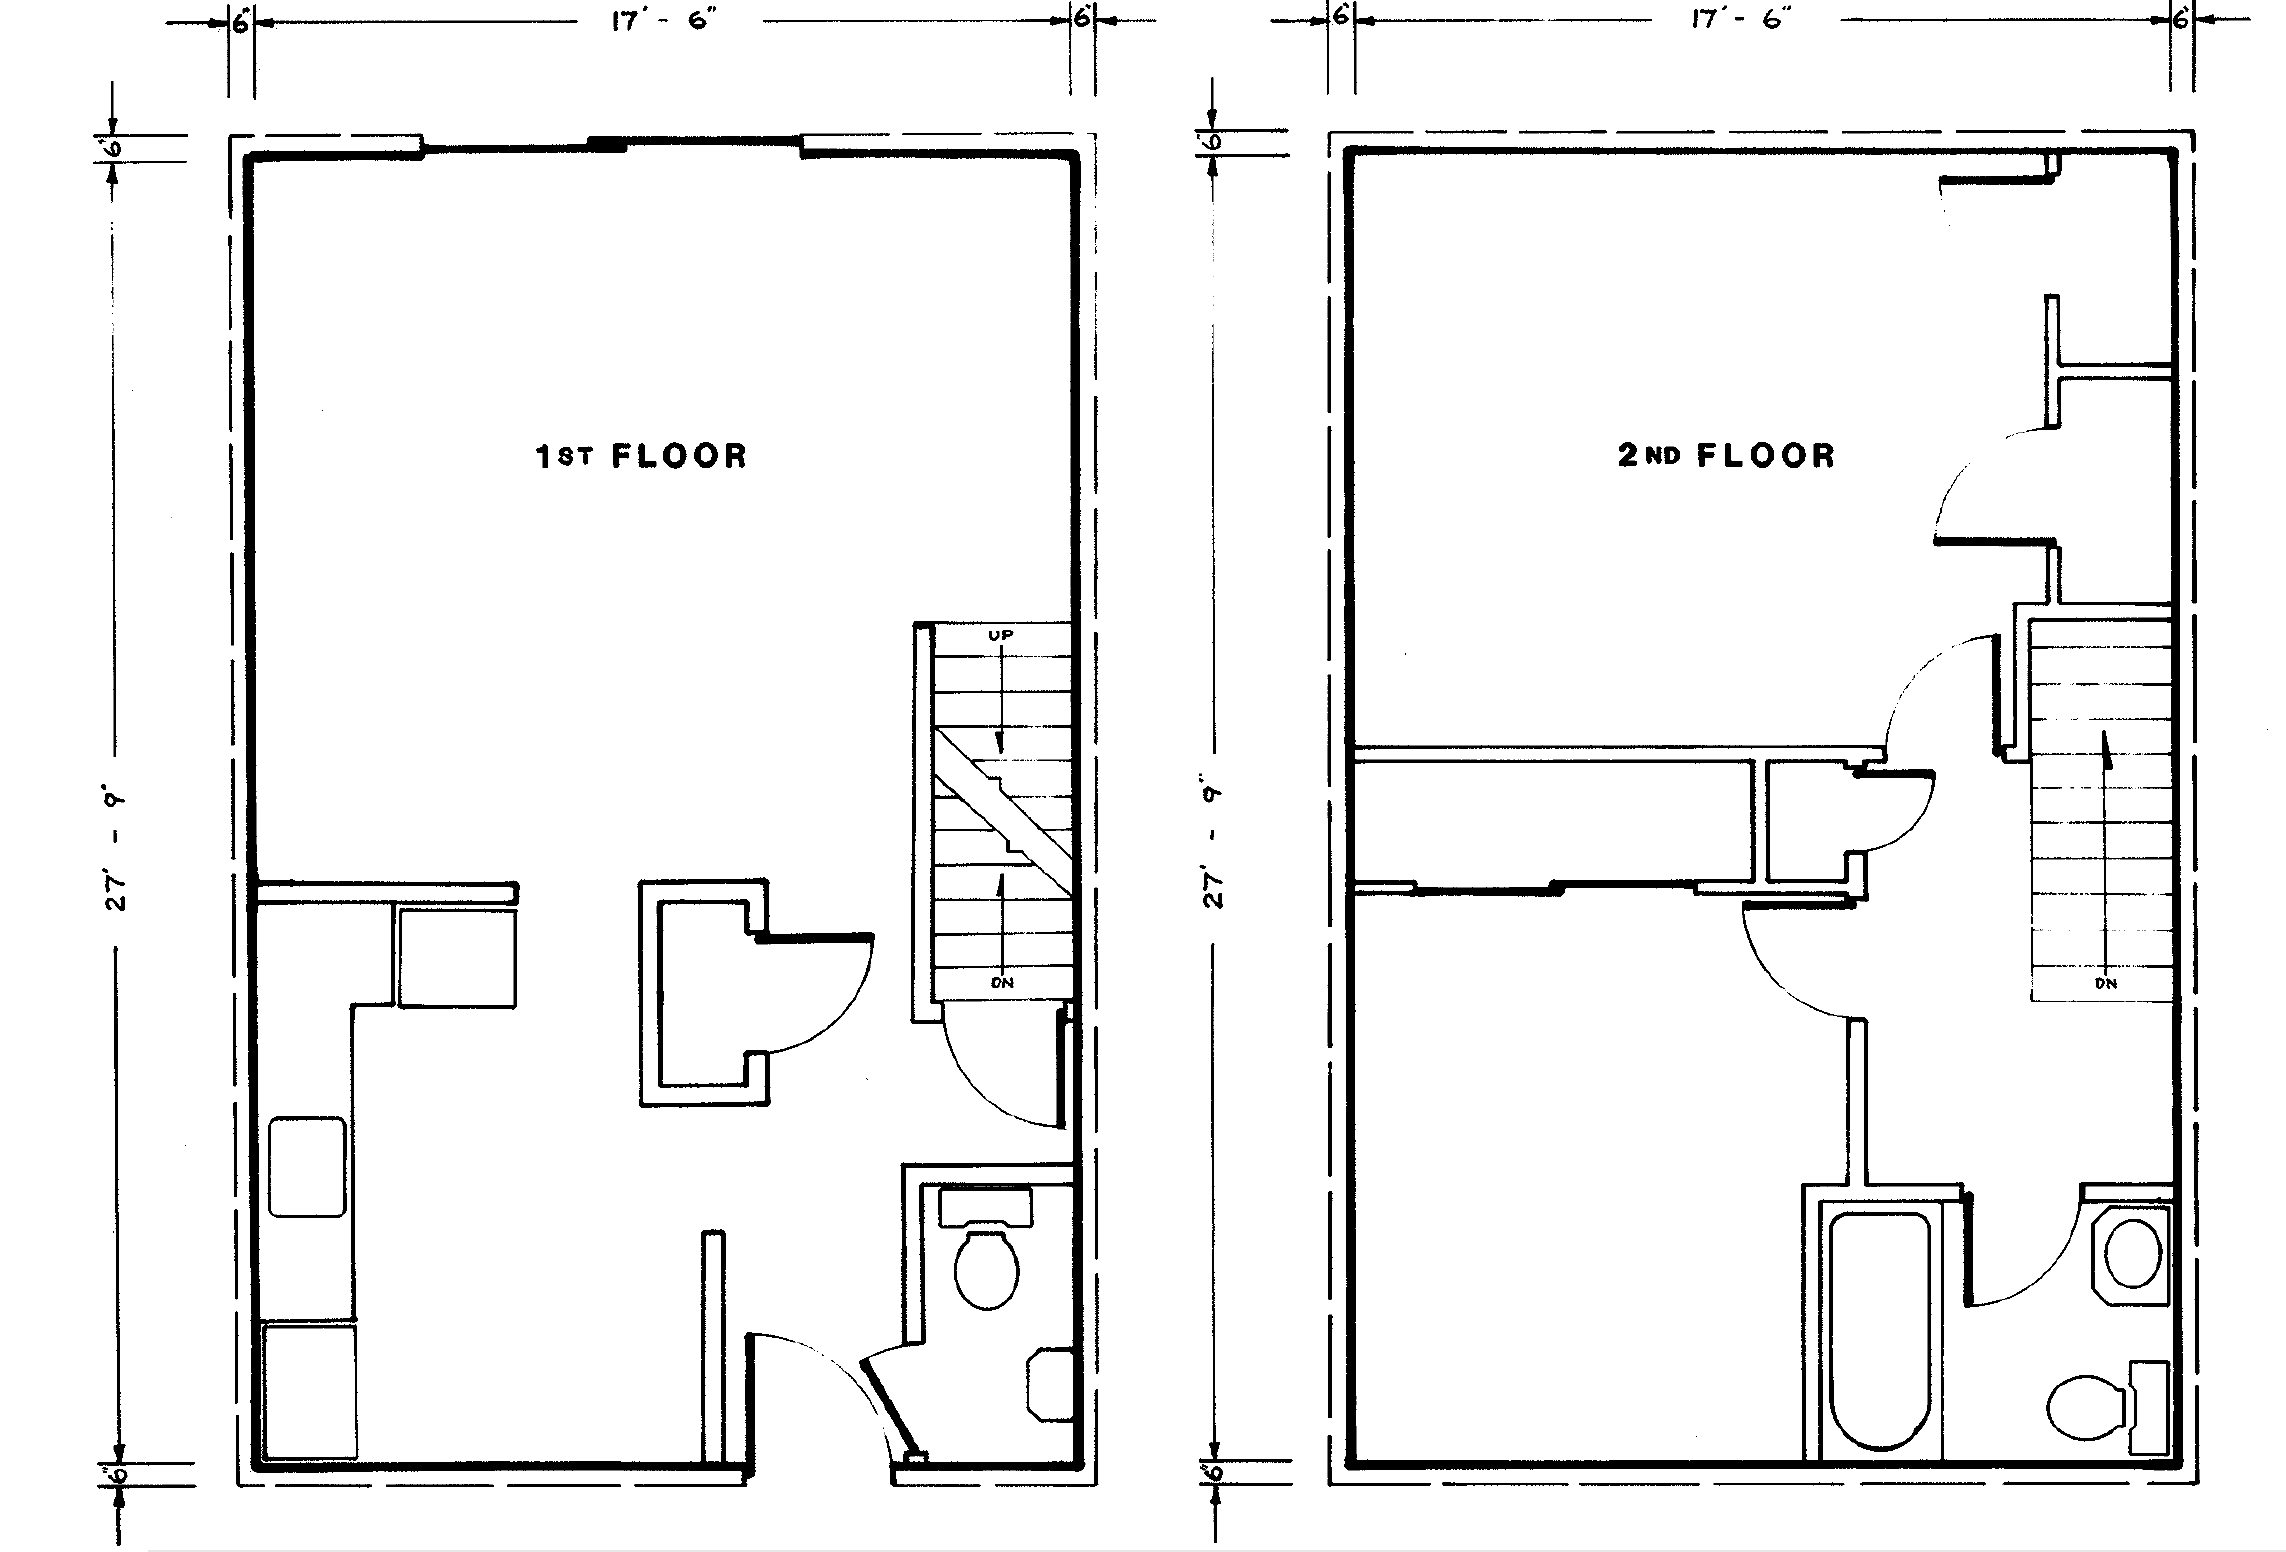 The second floor has a full bathroom and two (or three) bedrooms.The heat  is electric. Two bedroom townhomes have 975 sq ft of living area.